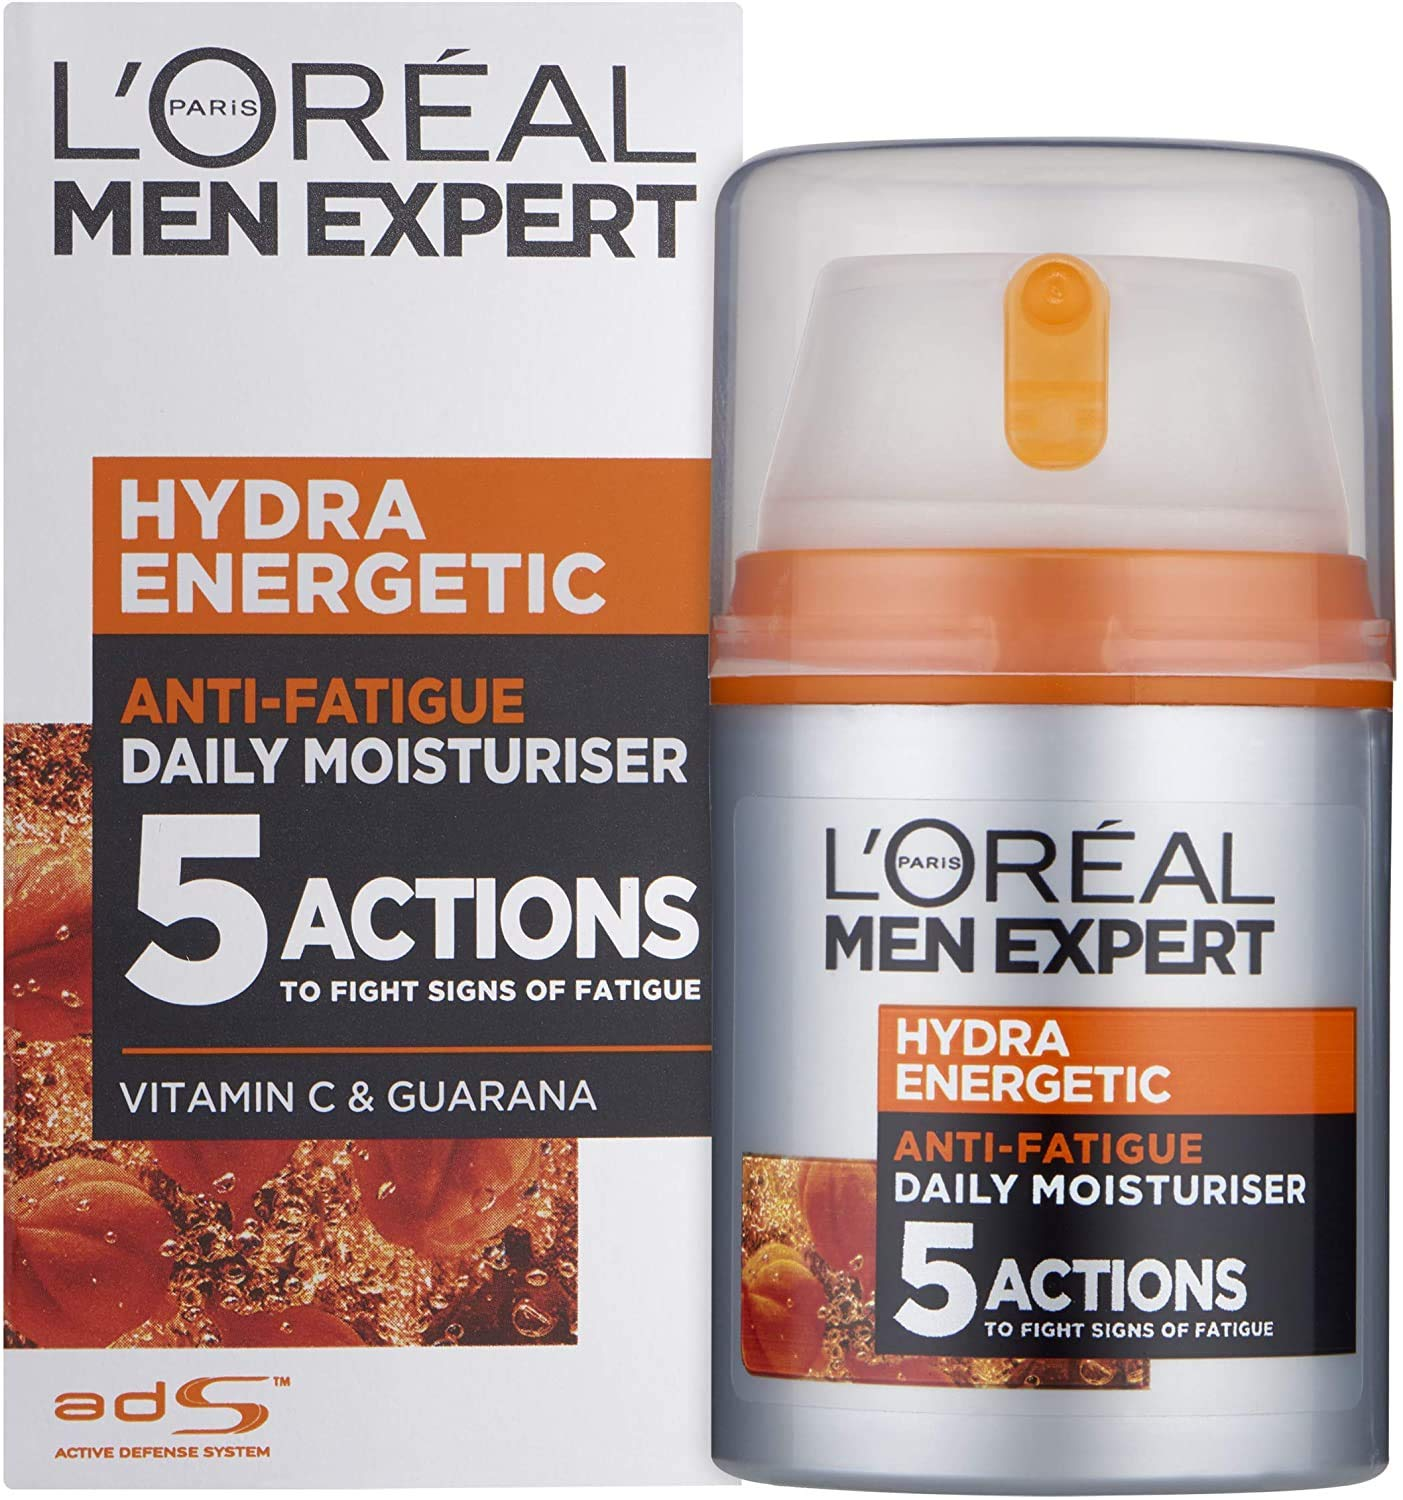 L'Oreal Men Expert Hydra Energetic Daily Anti-Fatigue Moisturizing Lotion, 1.6 Ounce